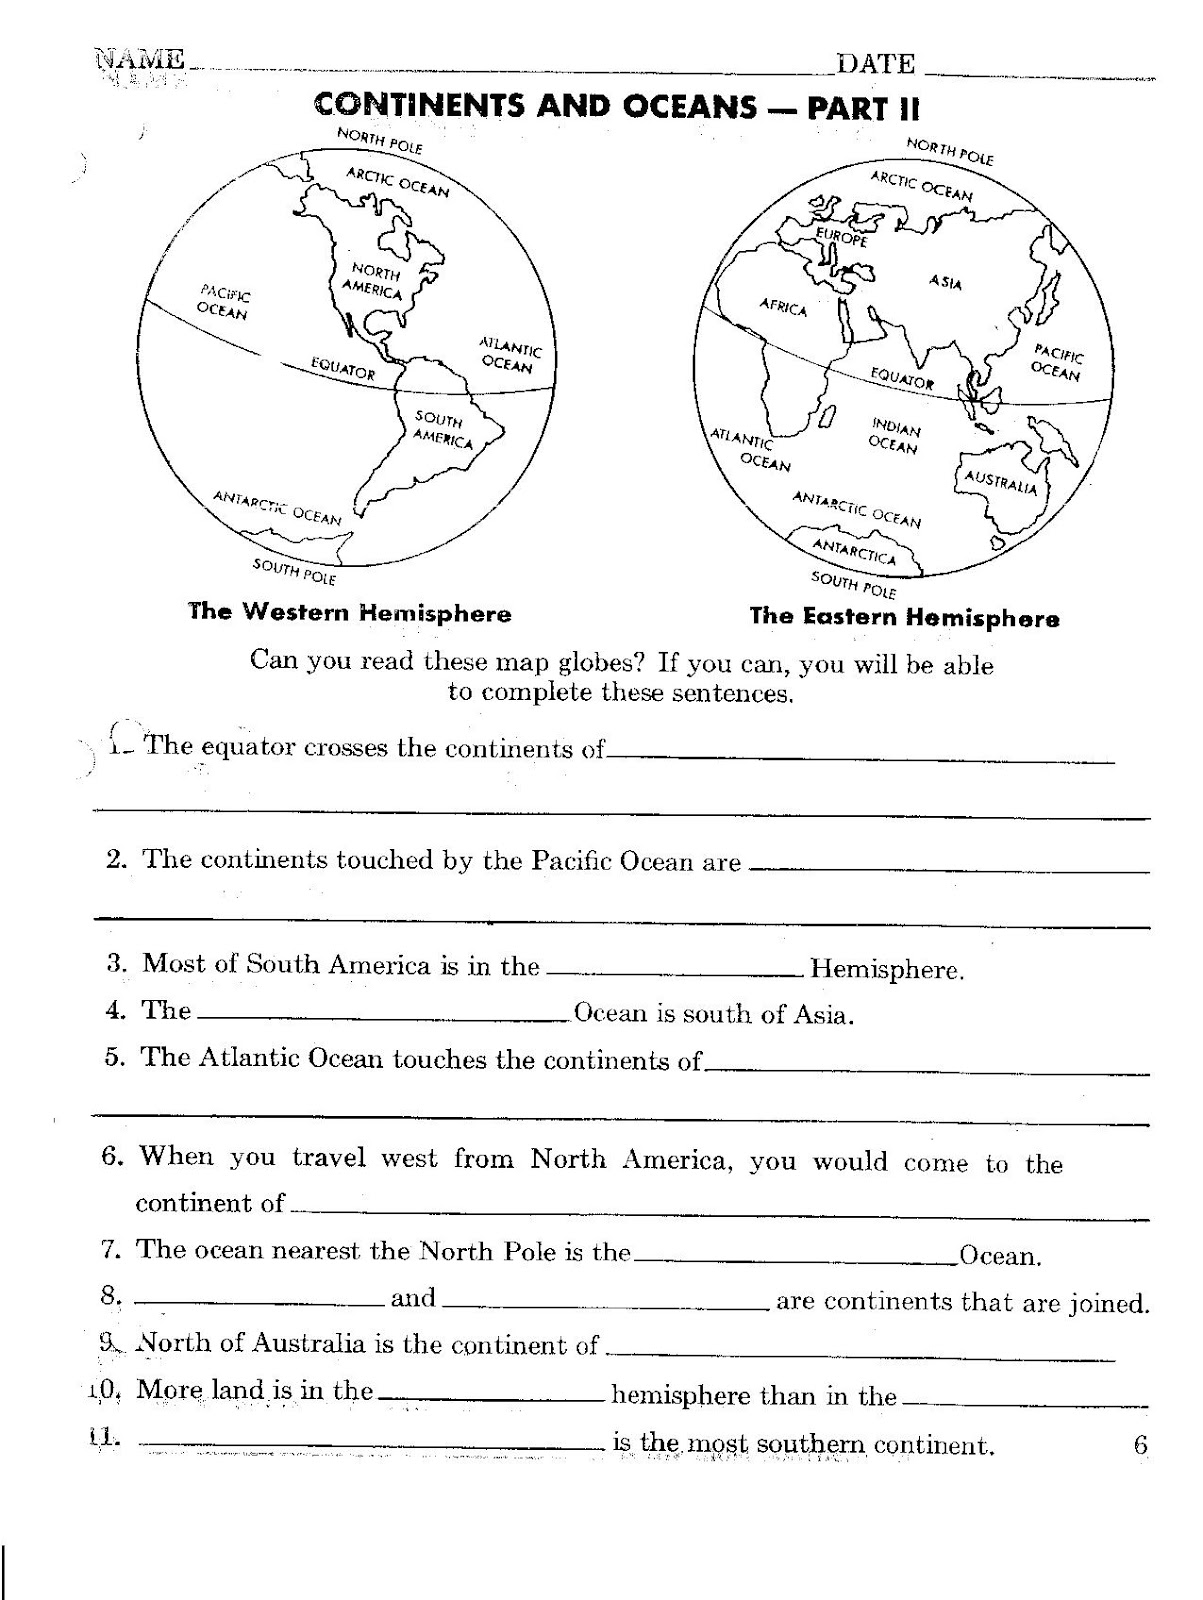 Printables Continents And Oceans Quiz Worksheet Messygracebook Thousands Of Printable Activities